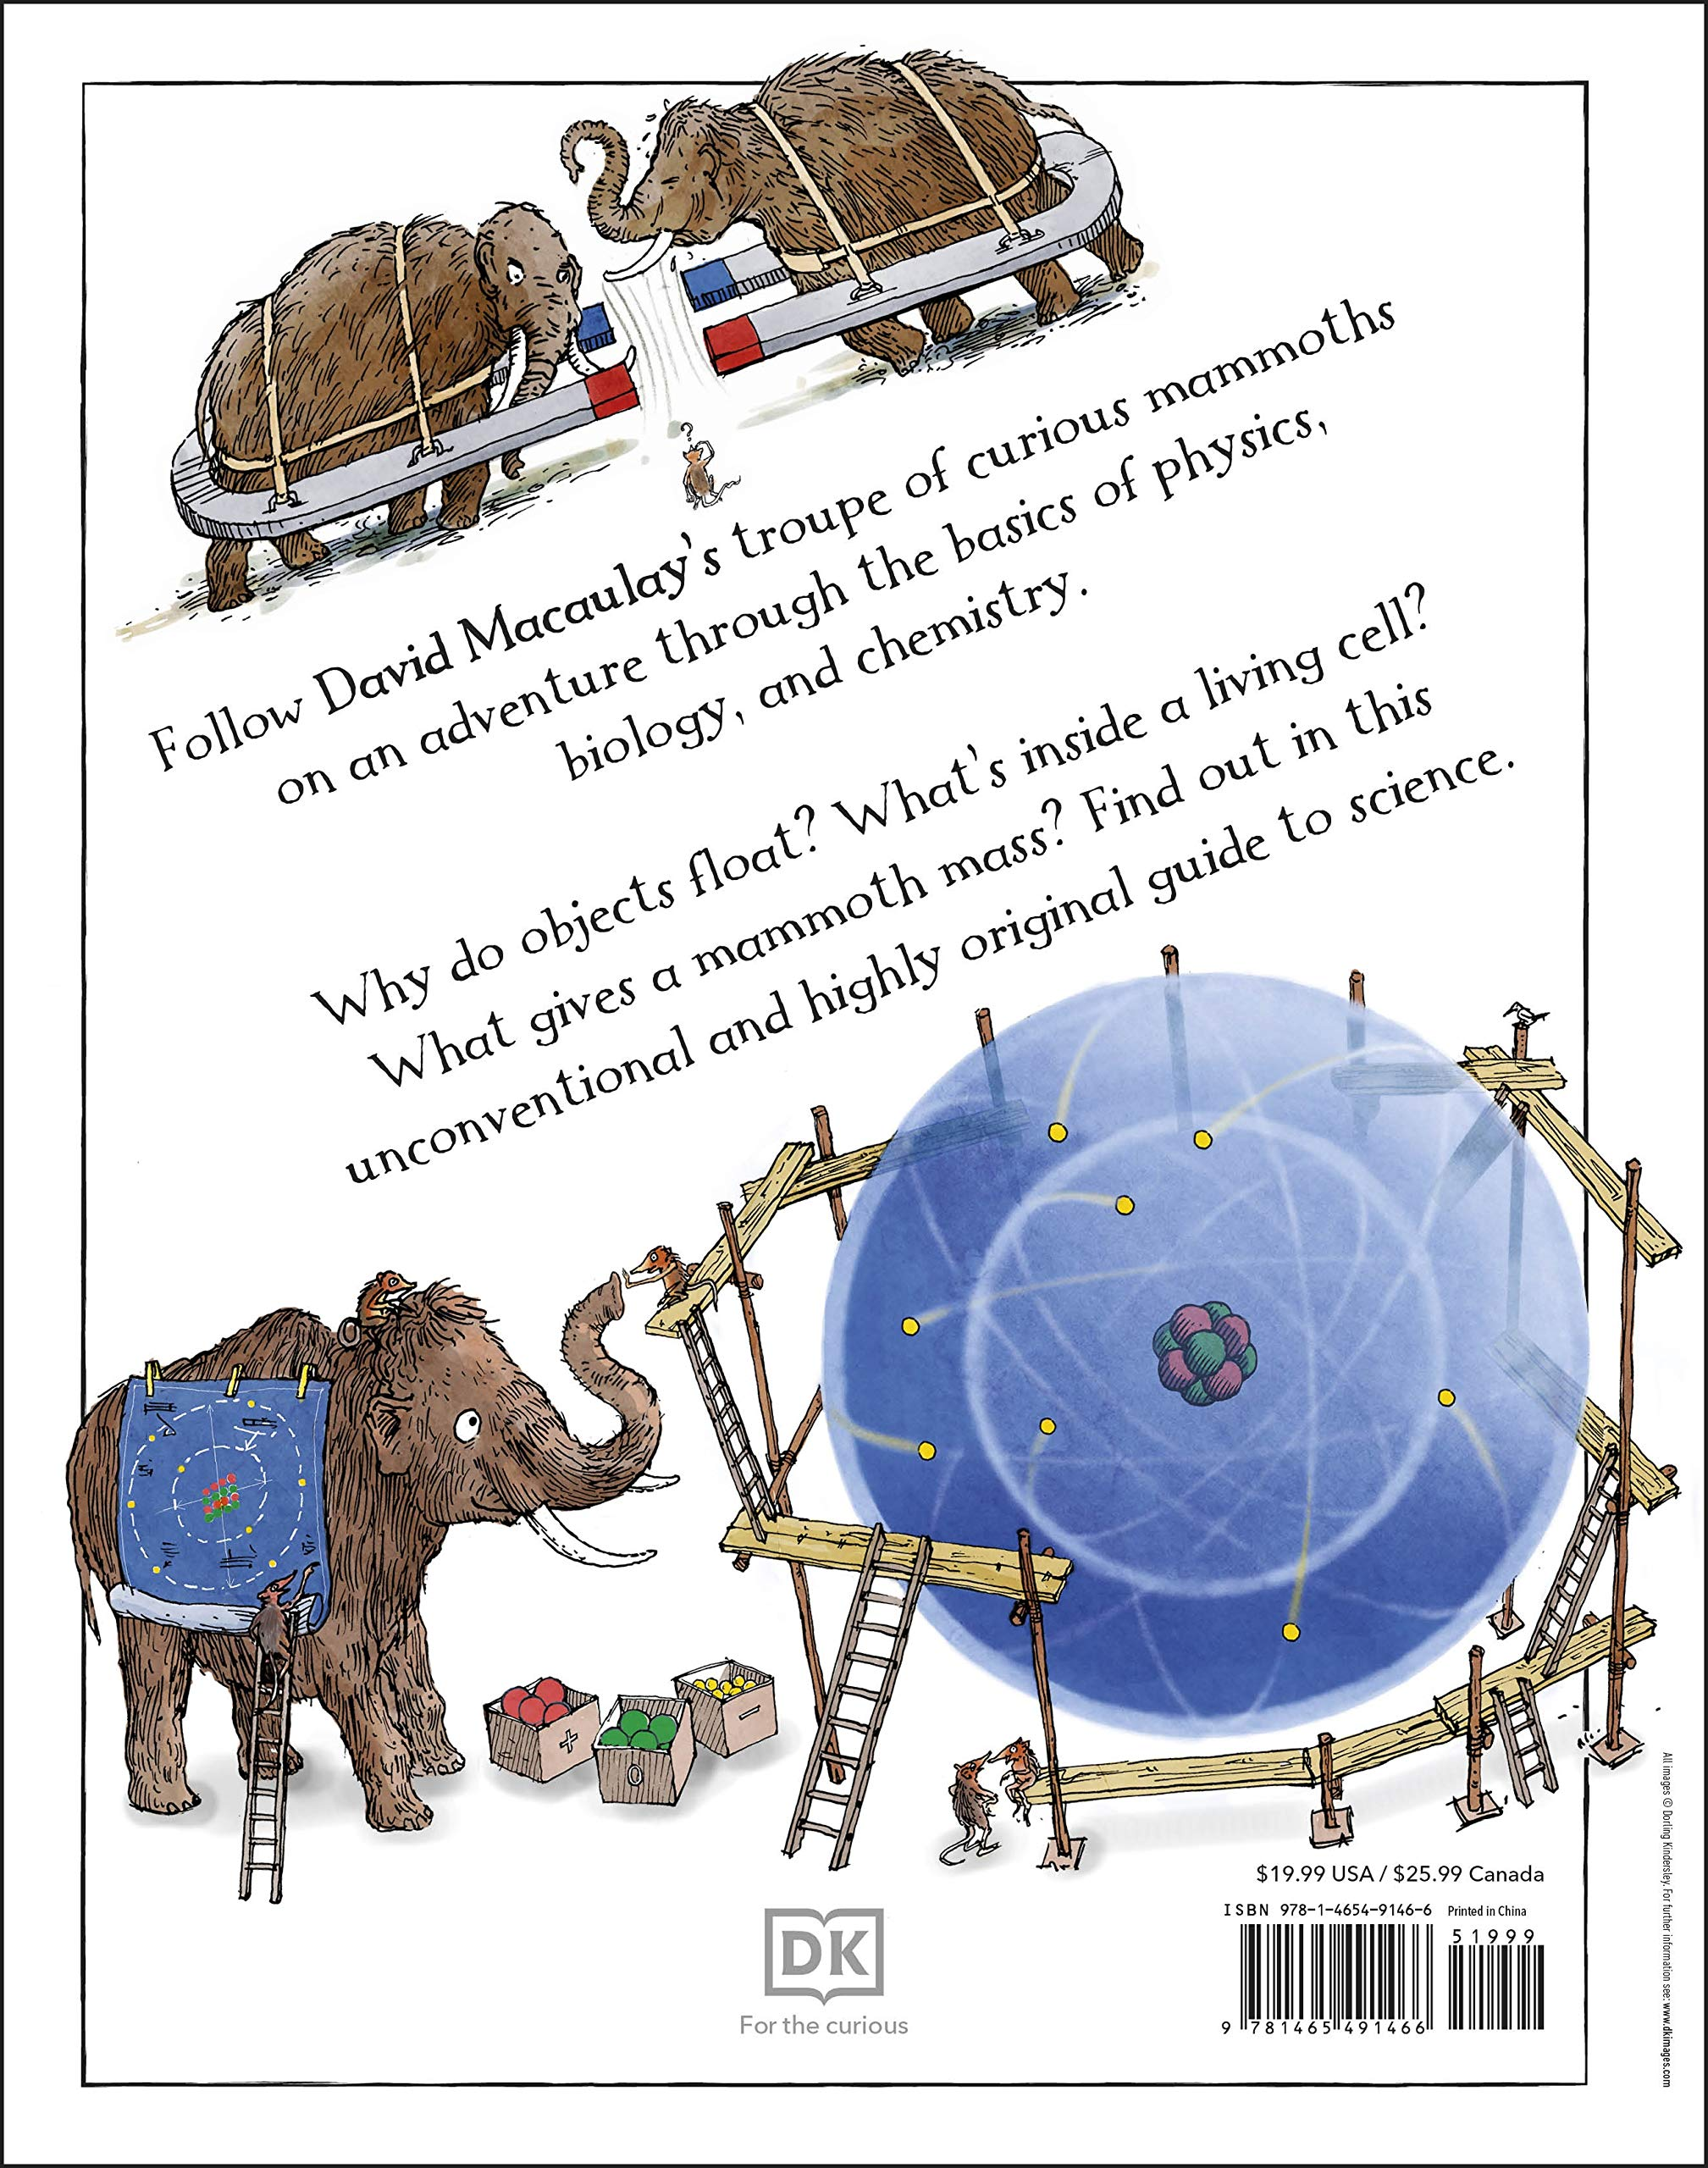 Mammoth Science: The Big Ideas That Explain Our World: DK, Macaulay, David:  9781465491466: Amazon.com: Books